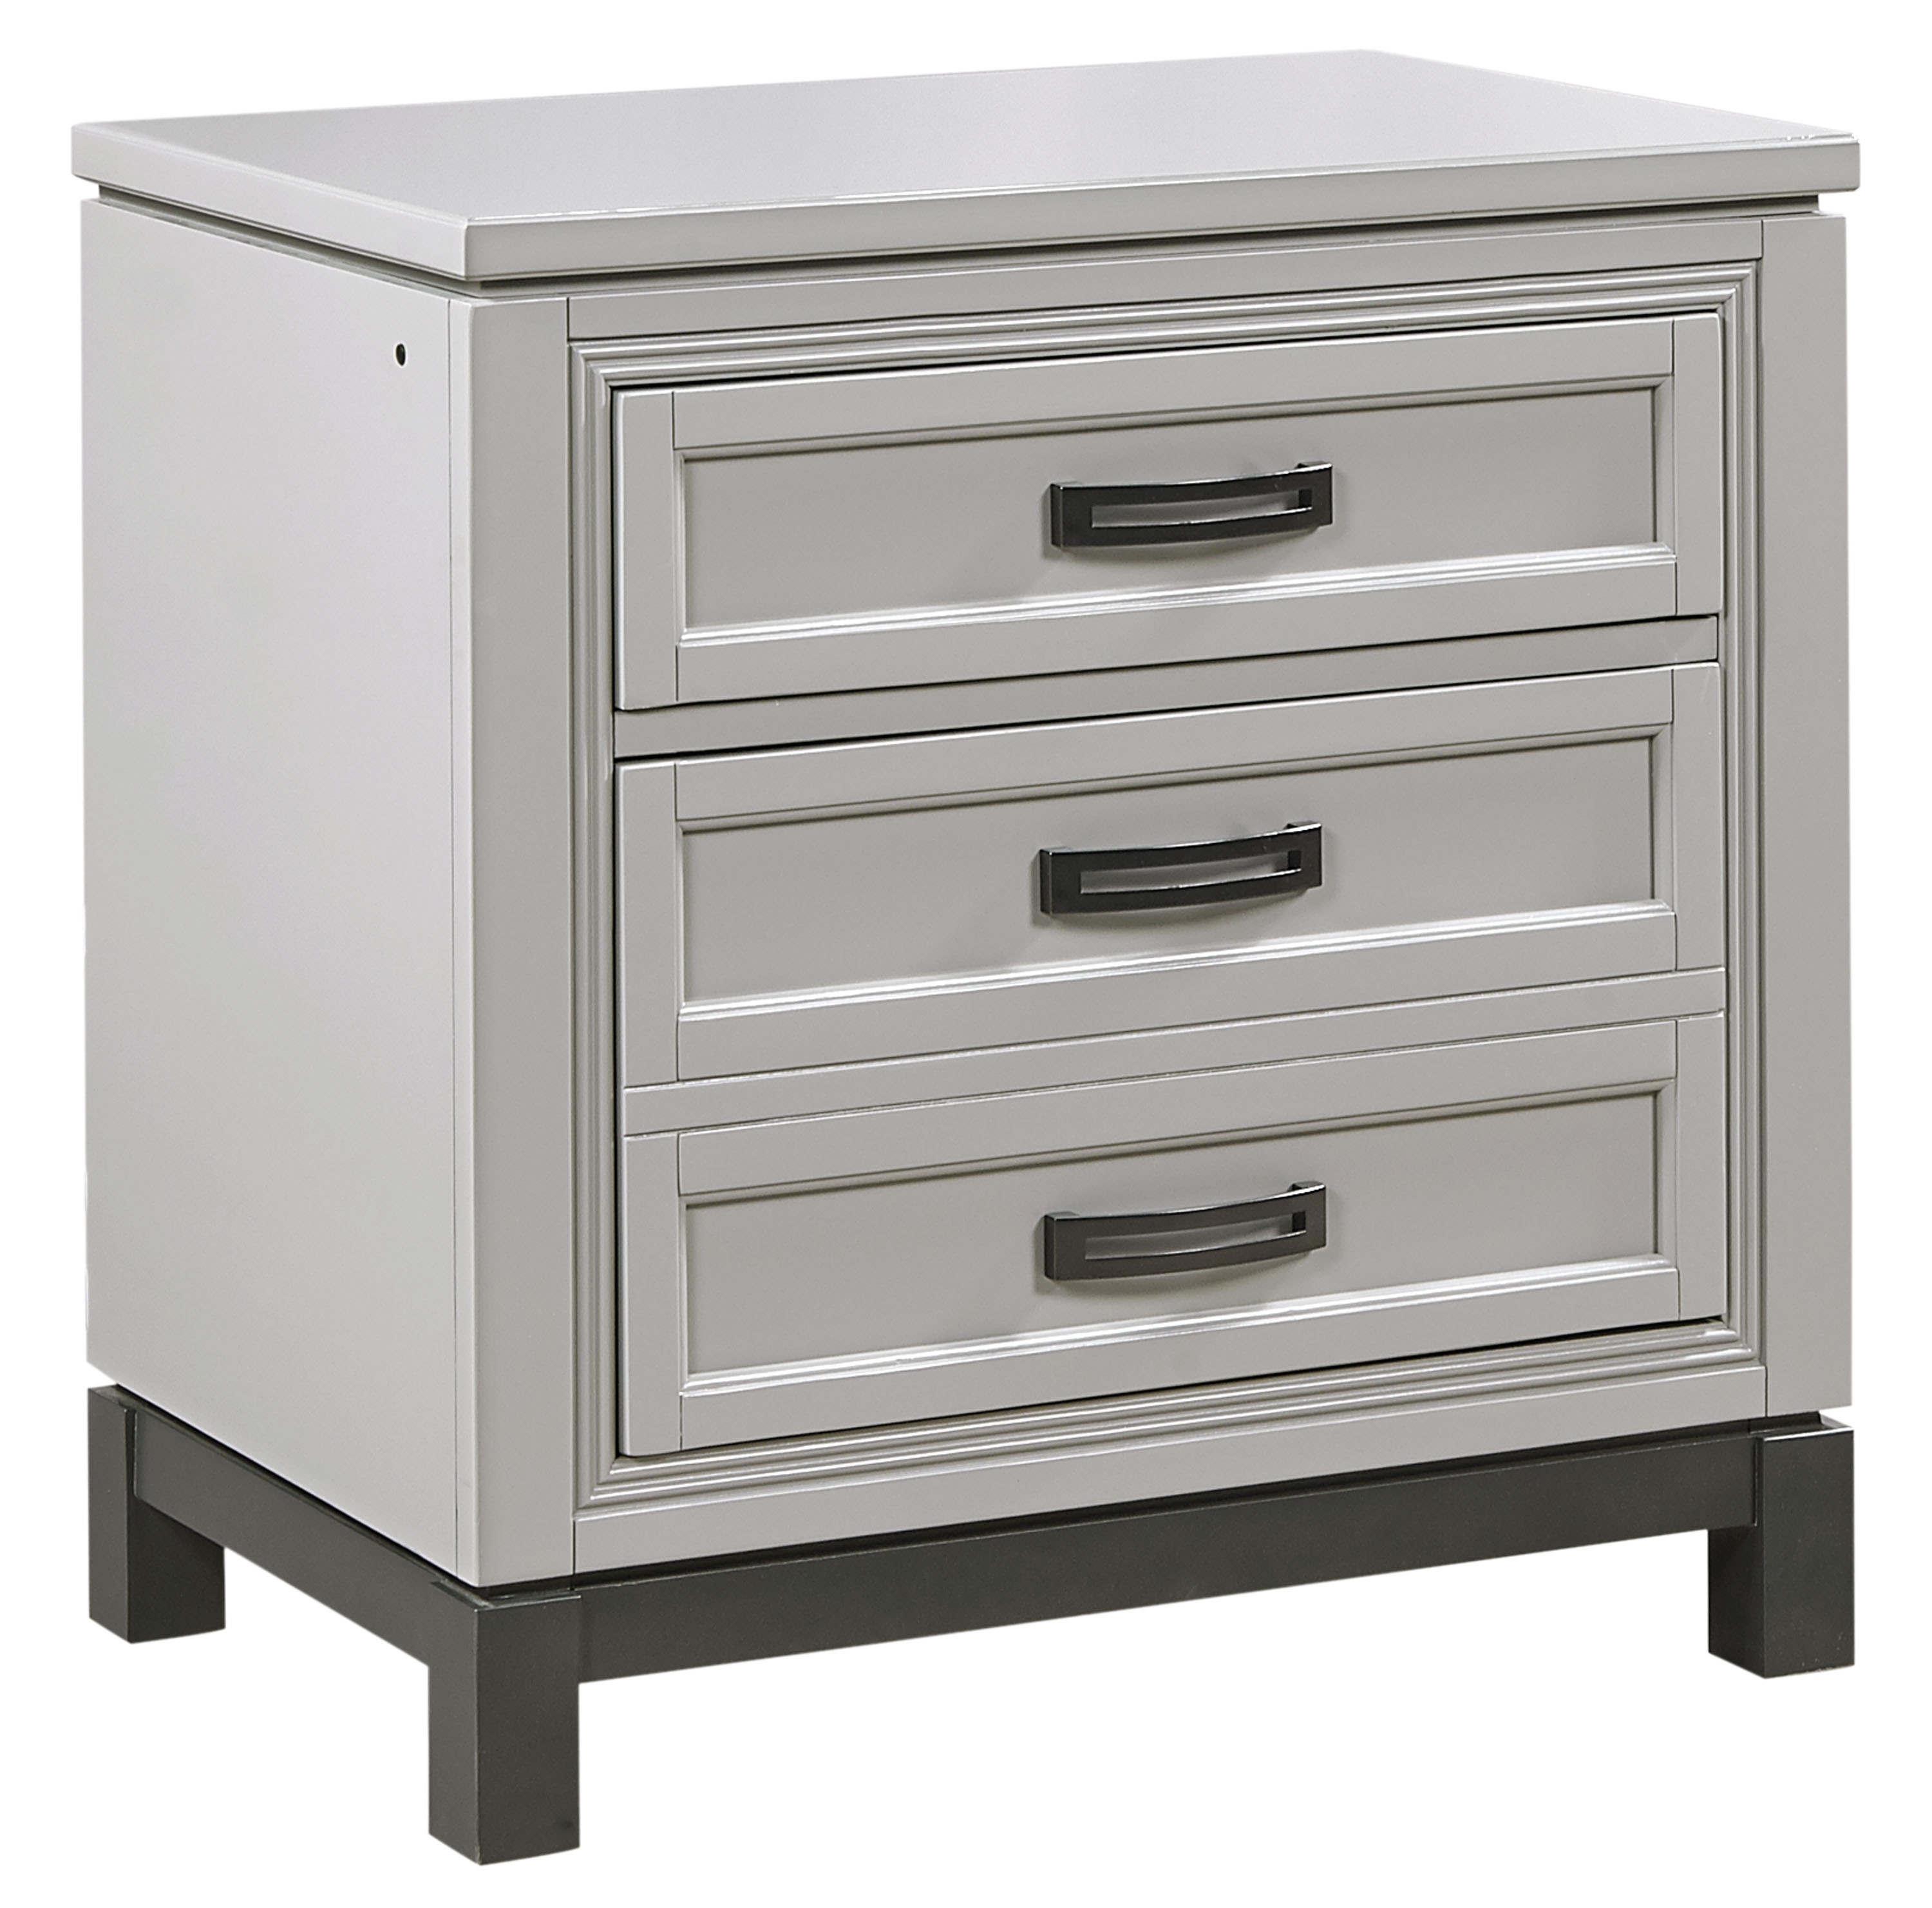 Hyde Park Liv.360 Nightstand  by Aspenhome at Darvin Furniture